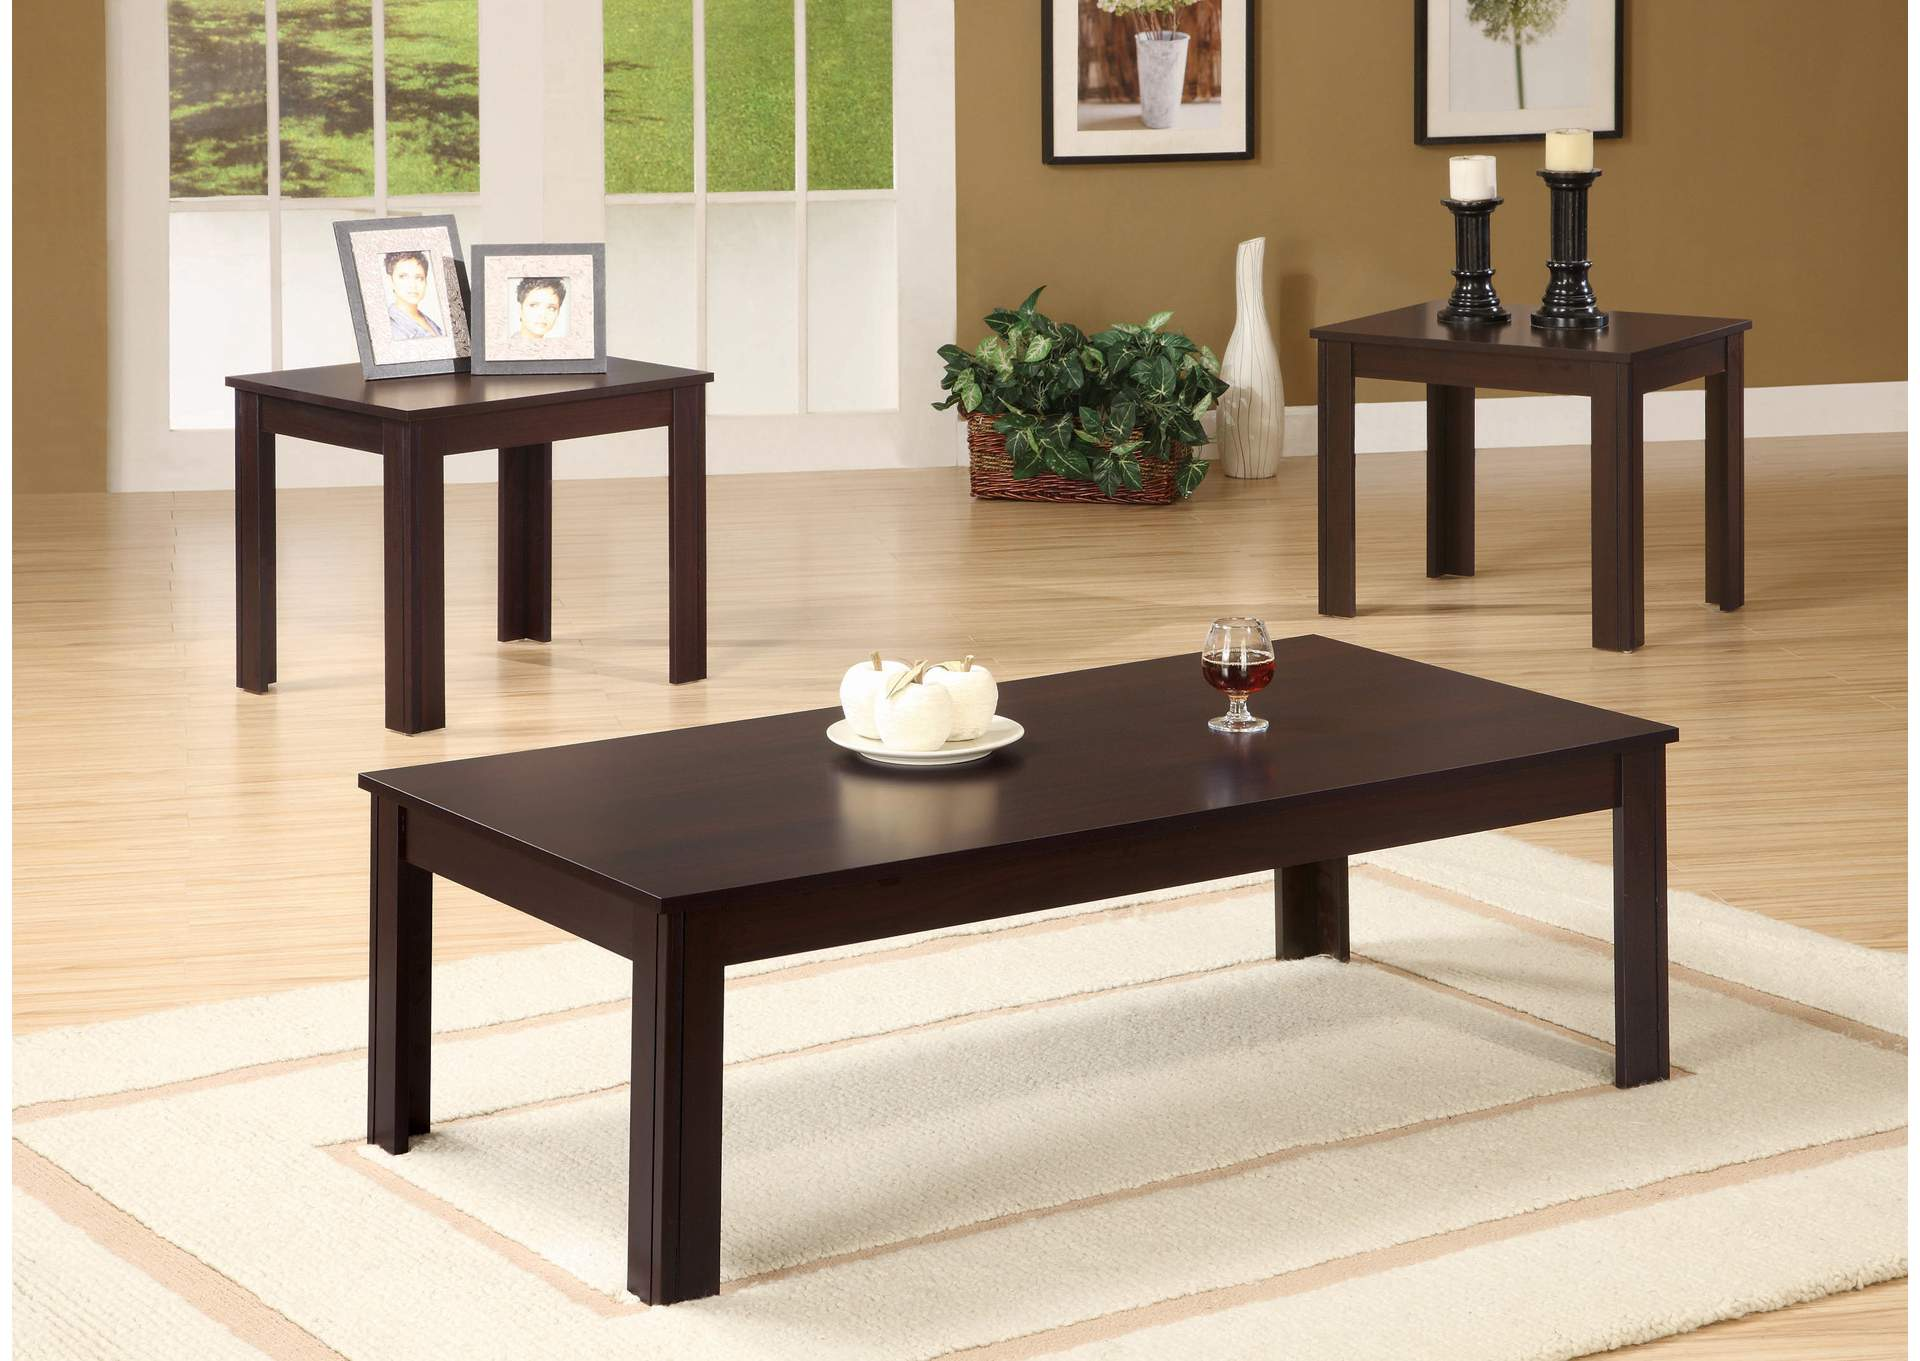 Cappuccino Transitional Walnut Three-Piece Occasional Table Set,Coaster Furniture